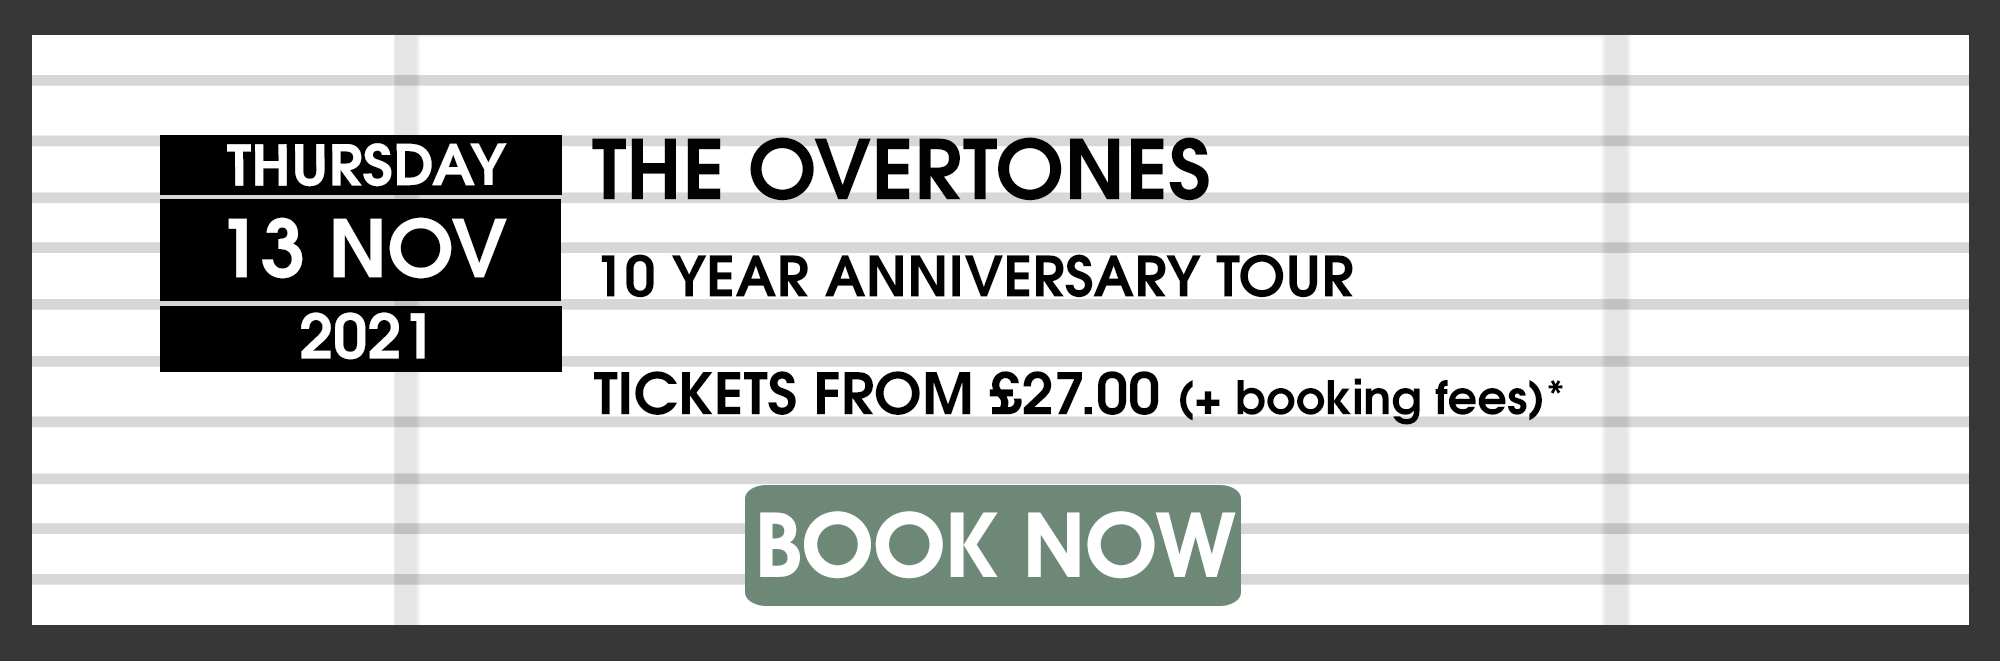 The Forum Bath The Overtones 2021